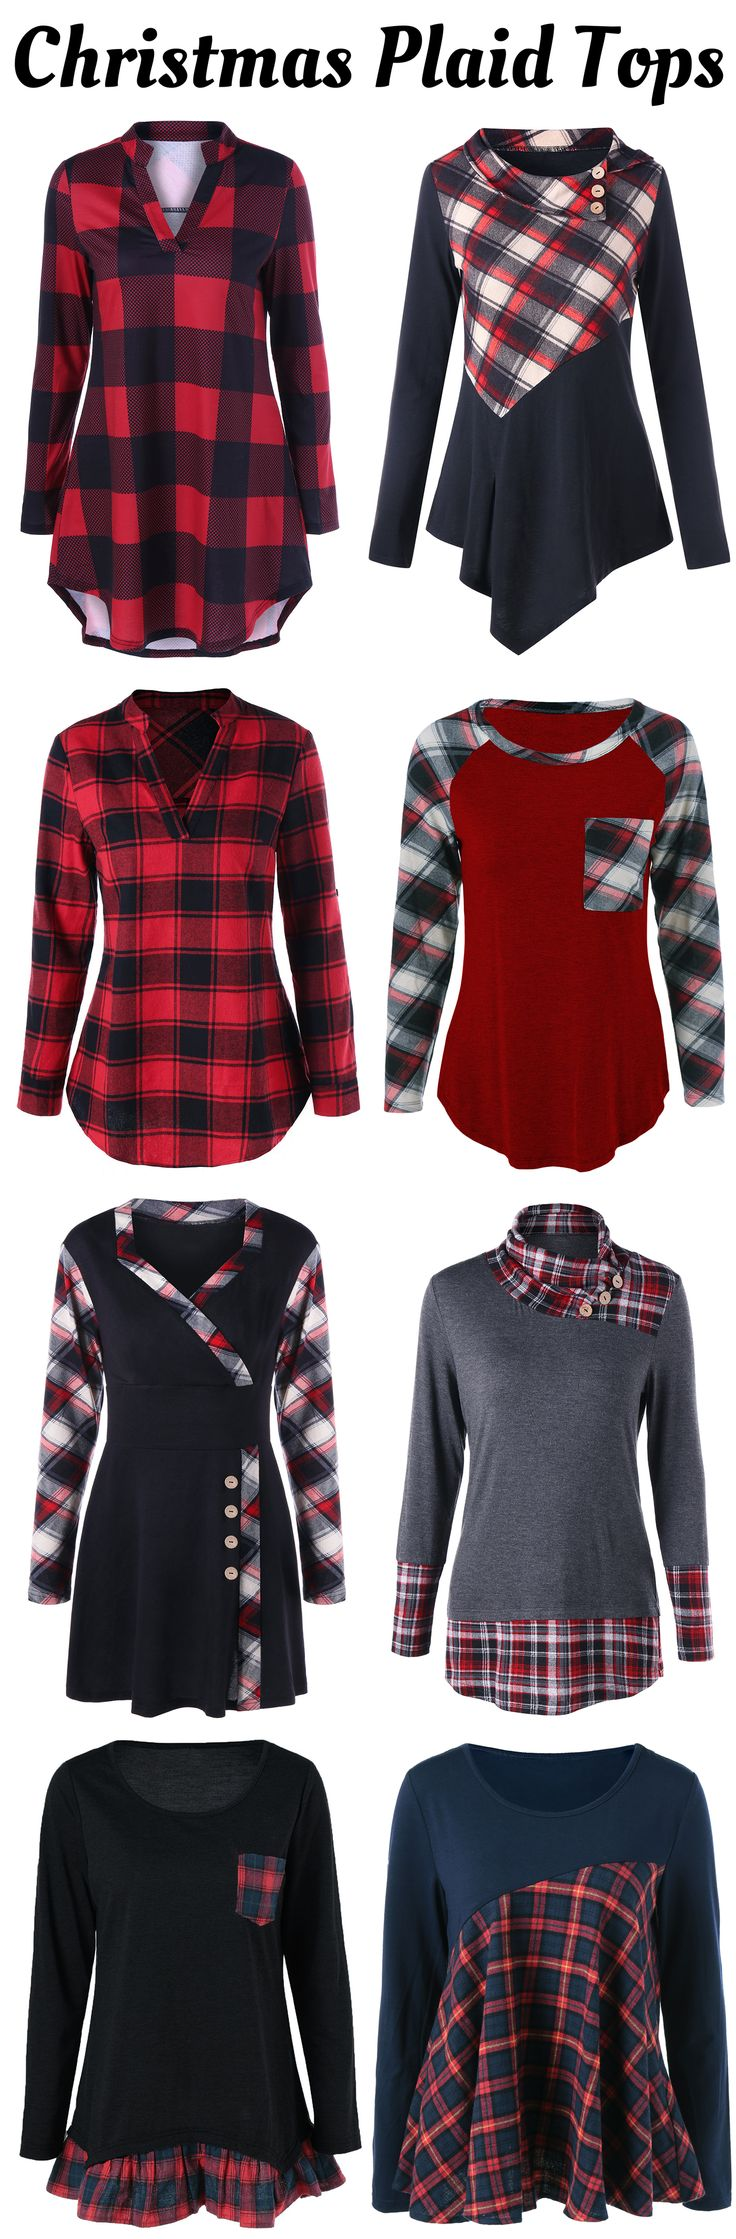 Up to 80% off Plaid Blouses | Free Shipping | #christmas #plaid